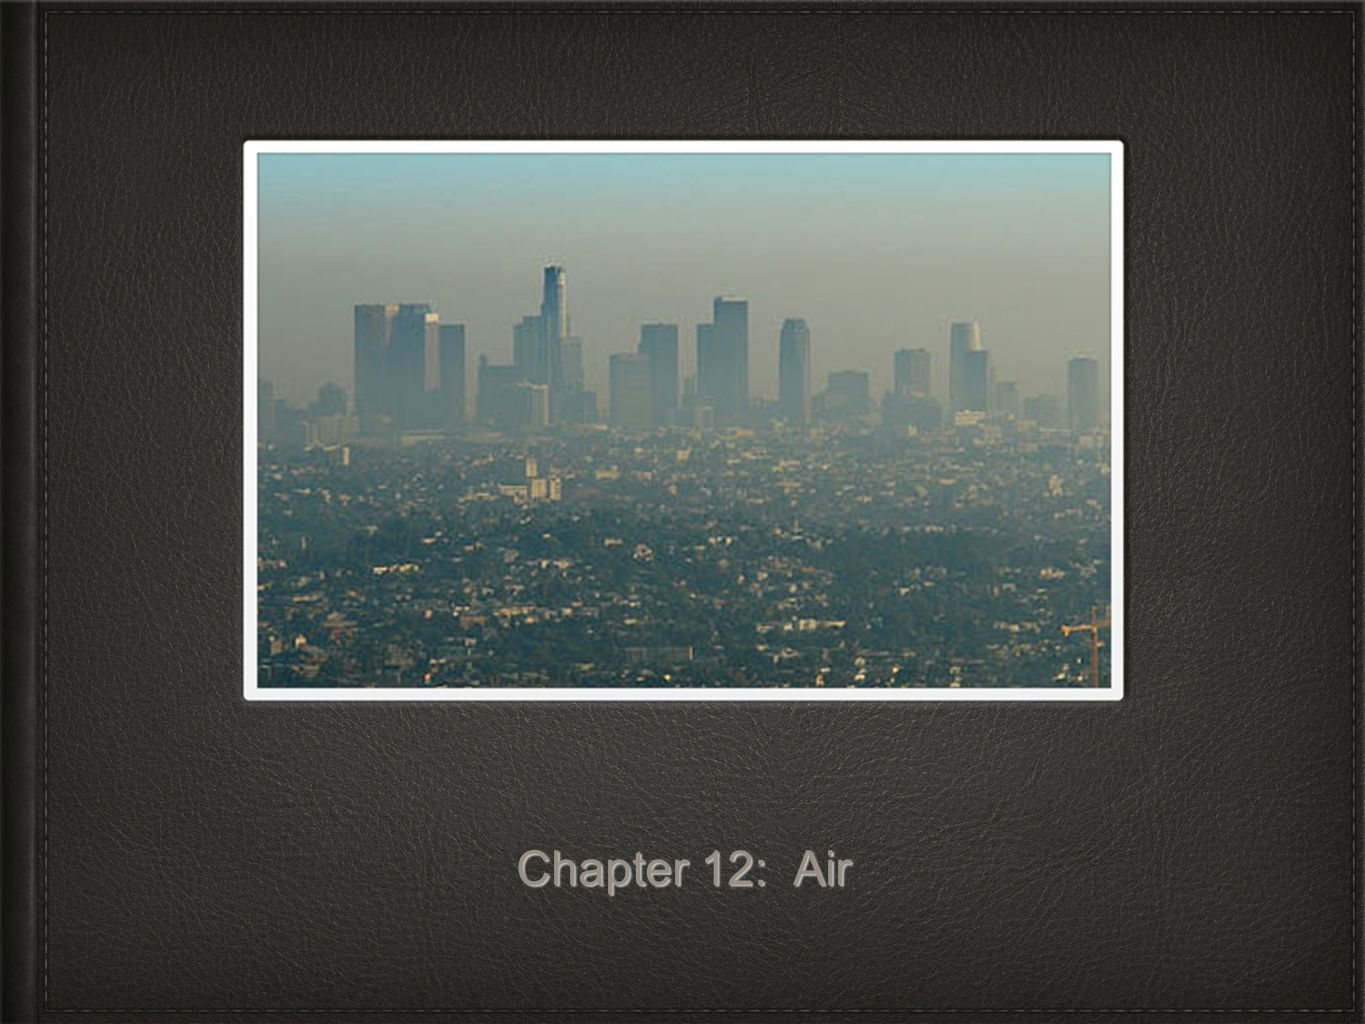 Chapter 12: Air